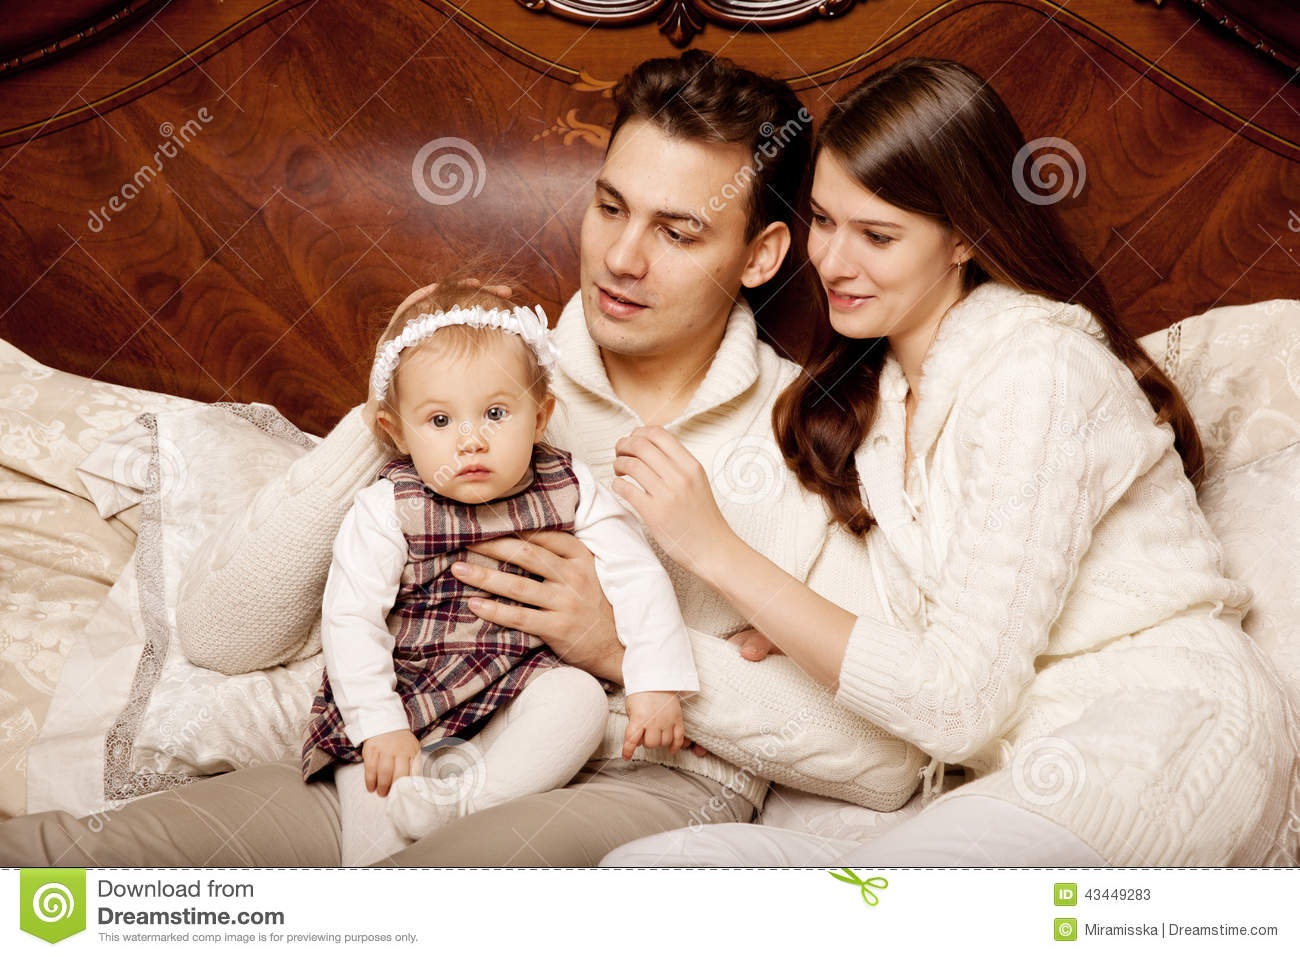 parenting family and little girl As a parent in the military you have many parenting resources available to you,  including military programs,  family sitting on couch with child hugging mother .